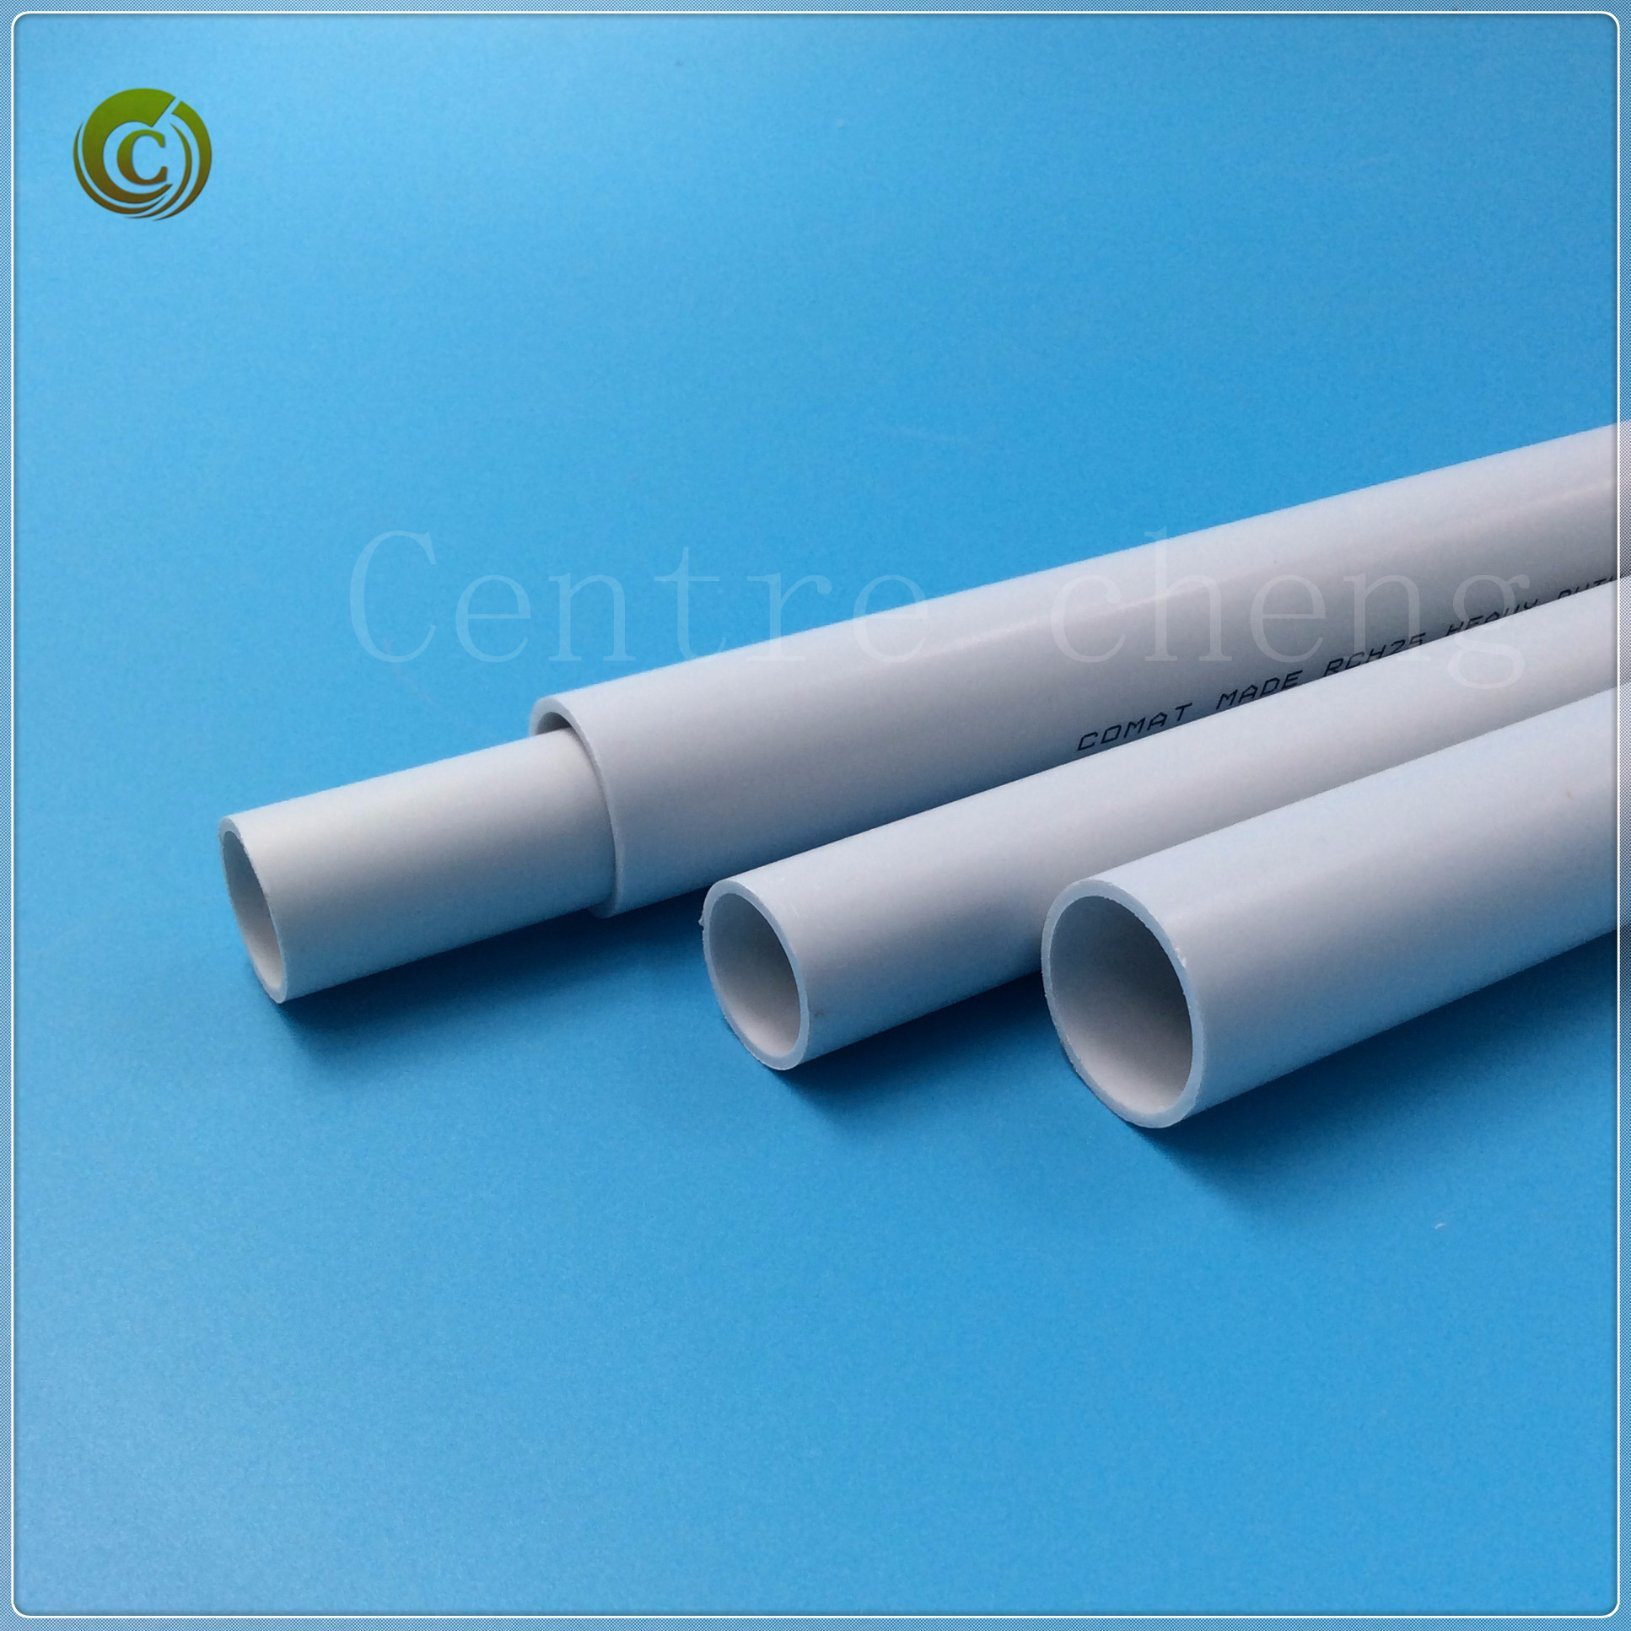 China 32mm PVC Conduit Pipe PVC Electrical Pipe for Conduit Wiring ...